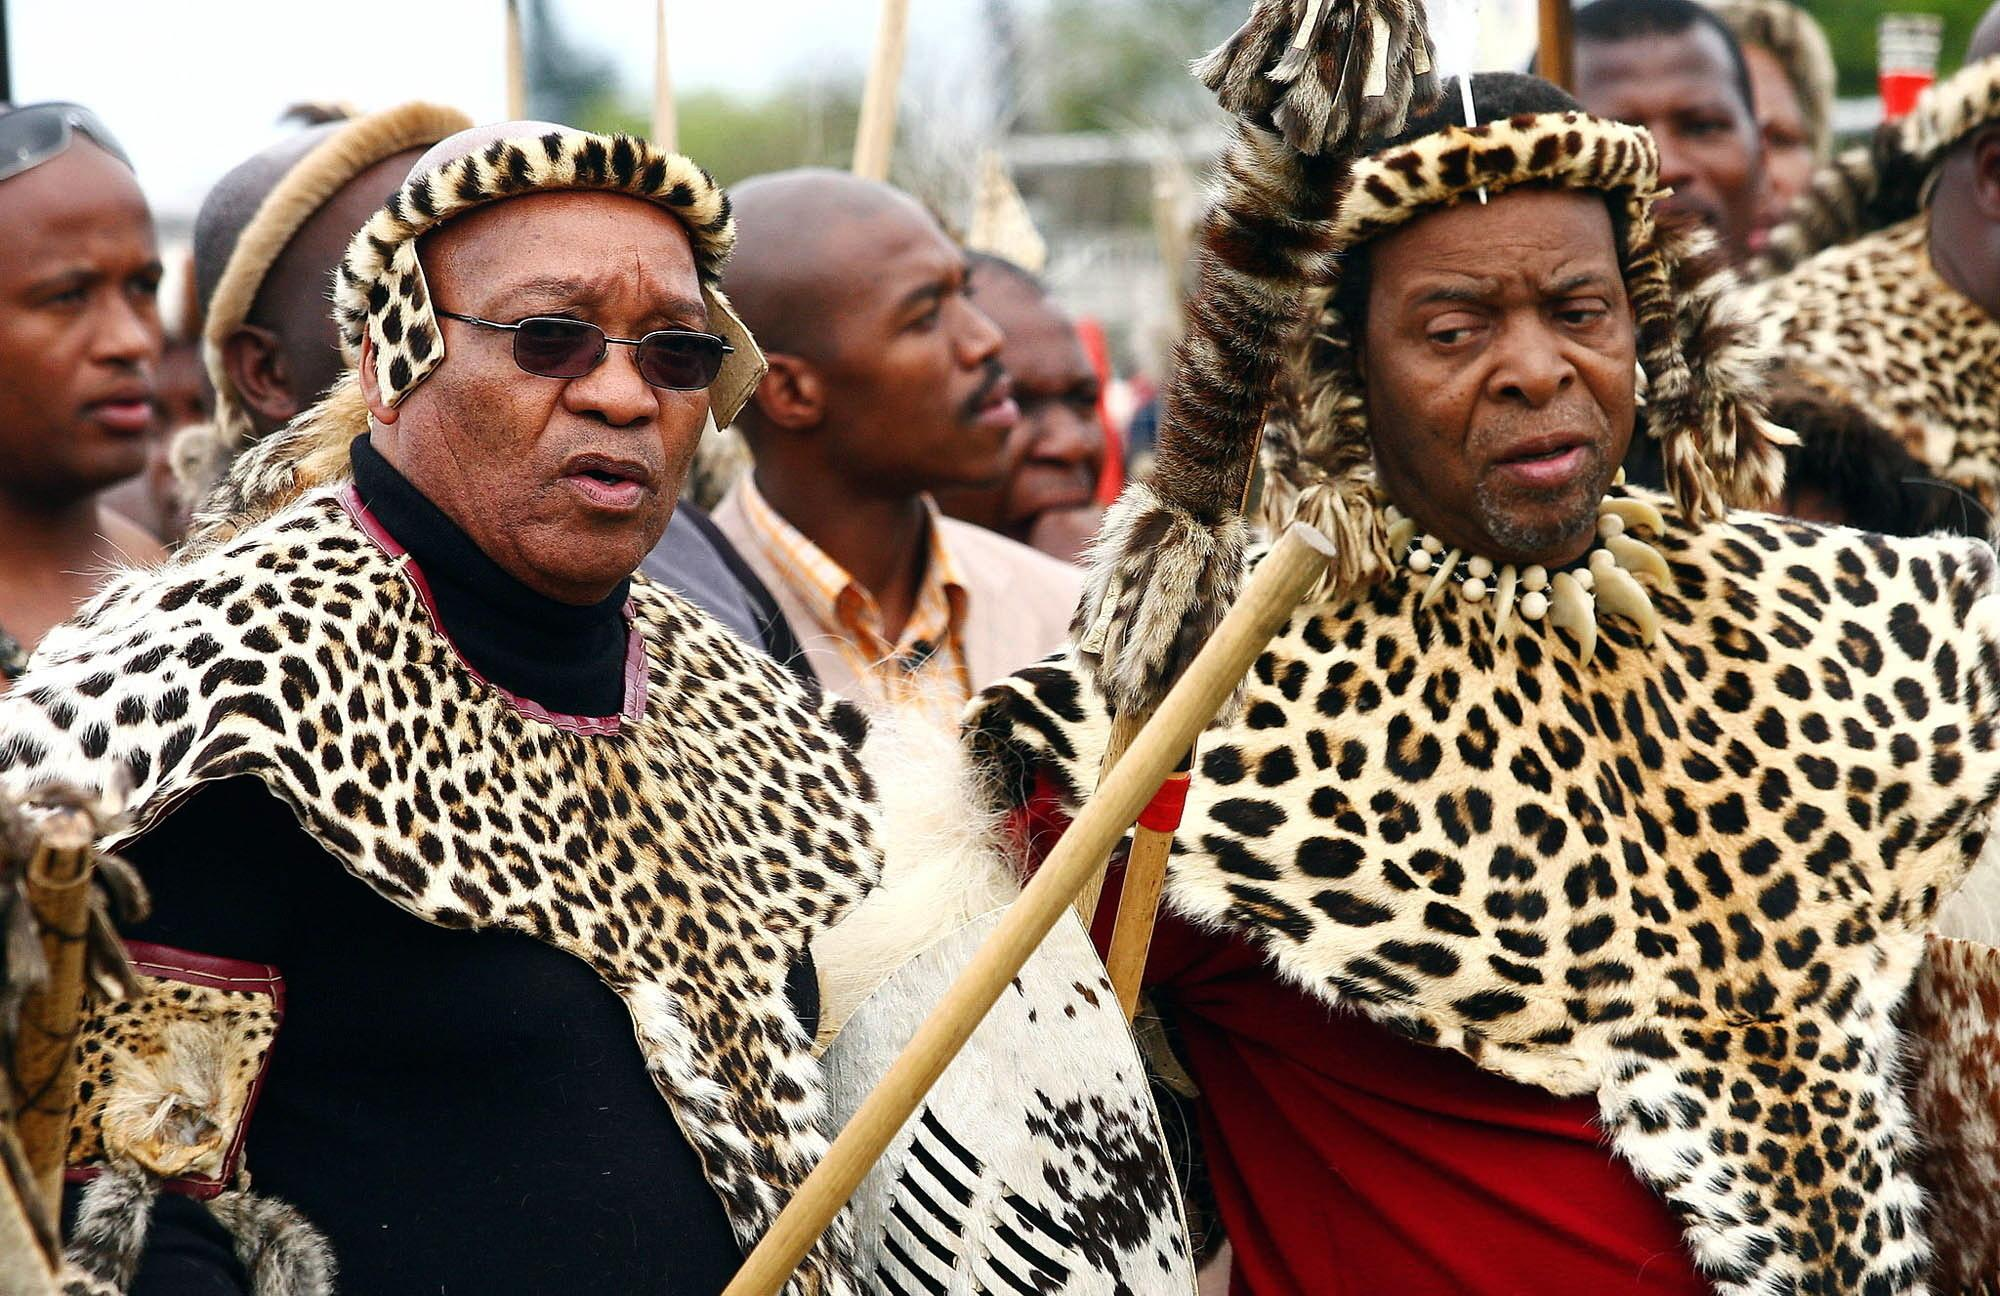 the zulu tribe of africa Shaka, founder of the zulu kingdom of southern africa, is murdered by his two half-brothers, dingane and mhlangana, after shaka's mental illness threatened to destroy the zulu tribe.